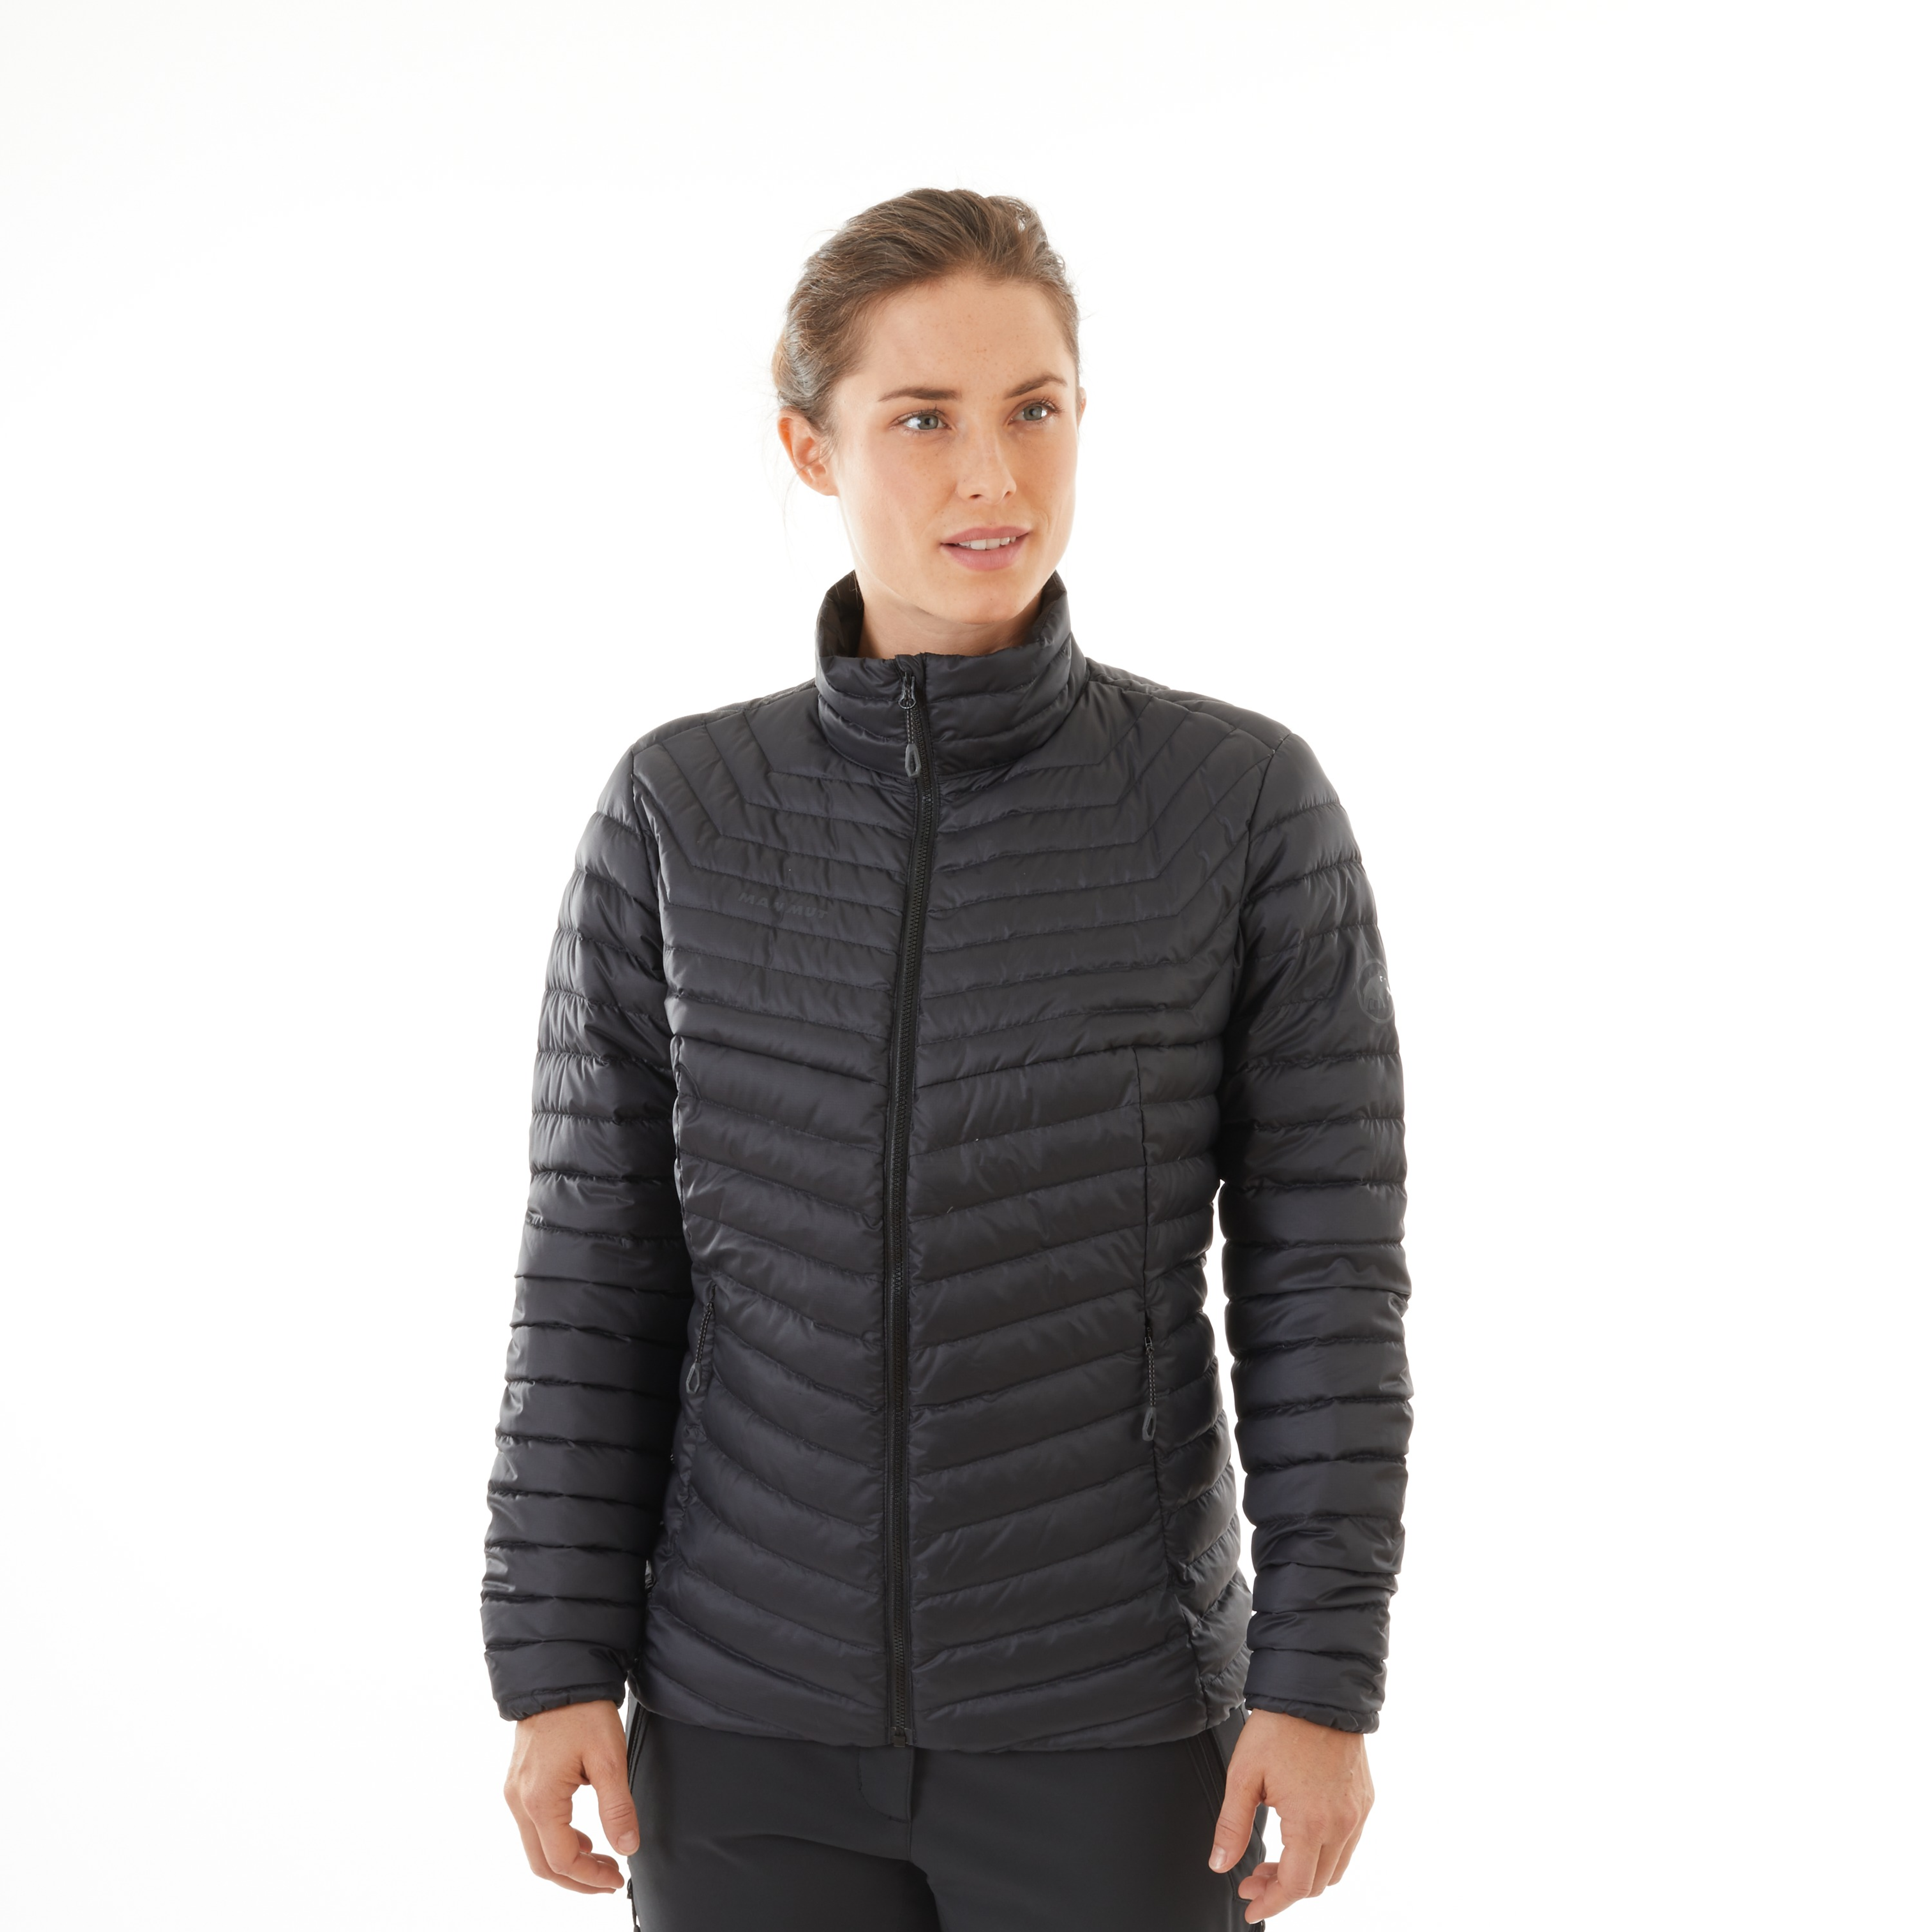 Convey IN Jacket Women product image